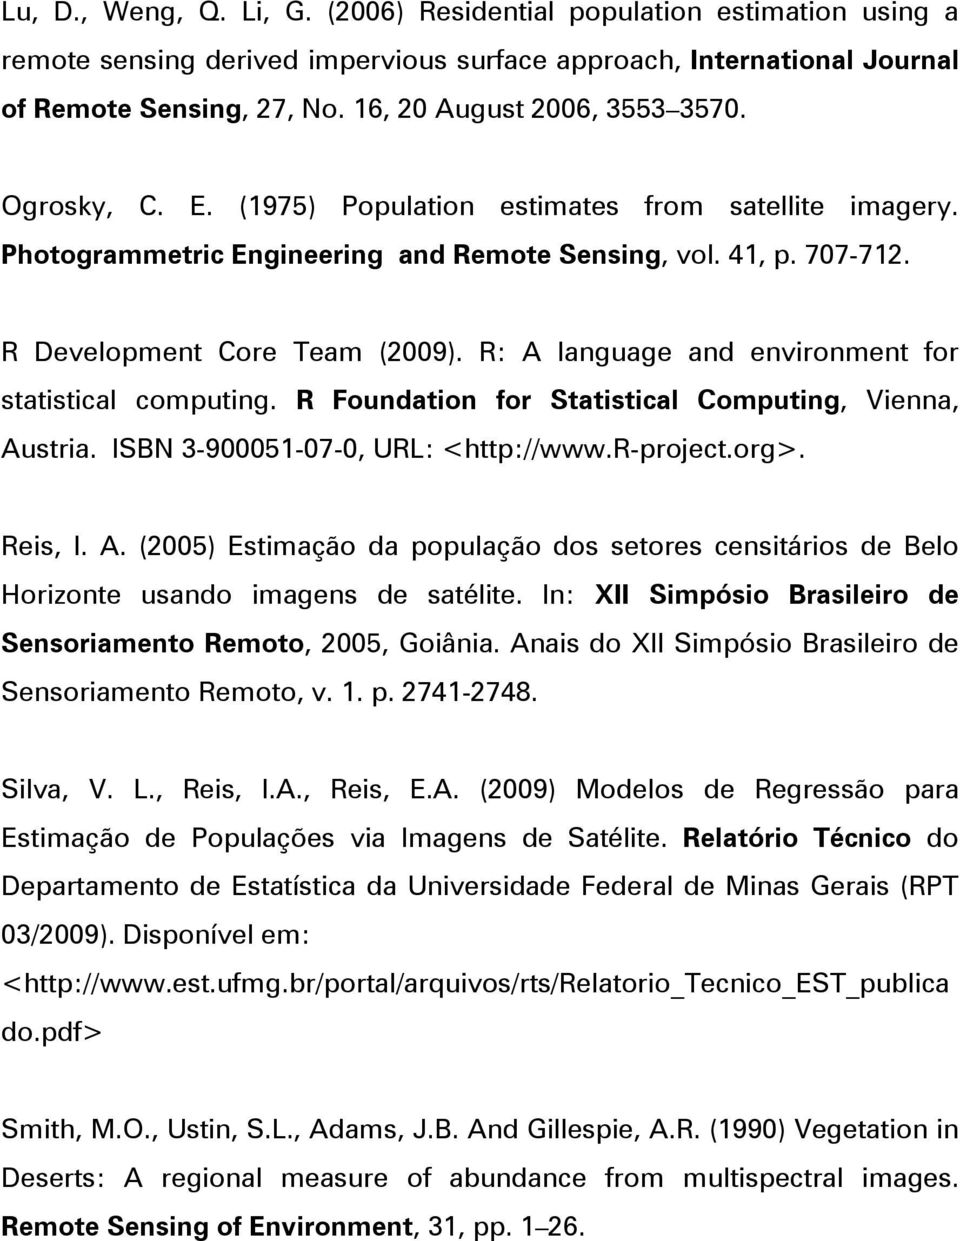 R: A language and environment for statistical computing. R Foundation for Statistical Computing, Vienna, Austria. ISBN 3-900051-07-0, URL: <http://www.r-project.org>. Reis, I. A. (2005) Estimação da população dos setores censitários de Belo Horizonte usando imagens de satélite.